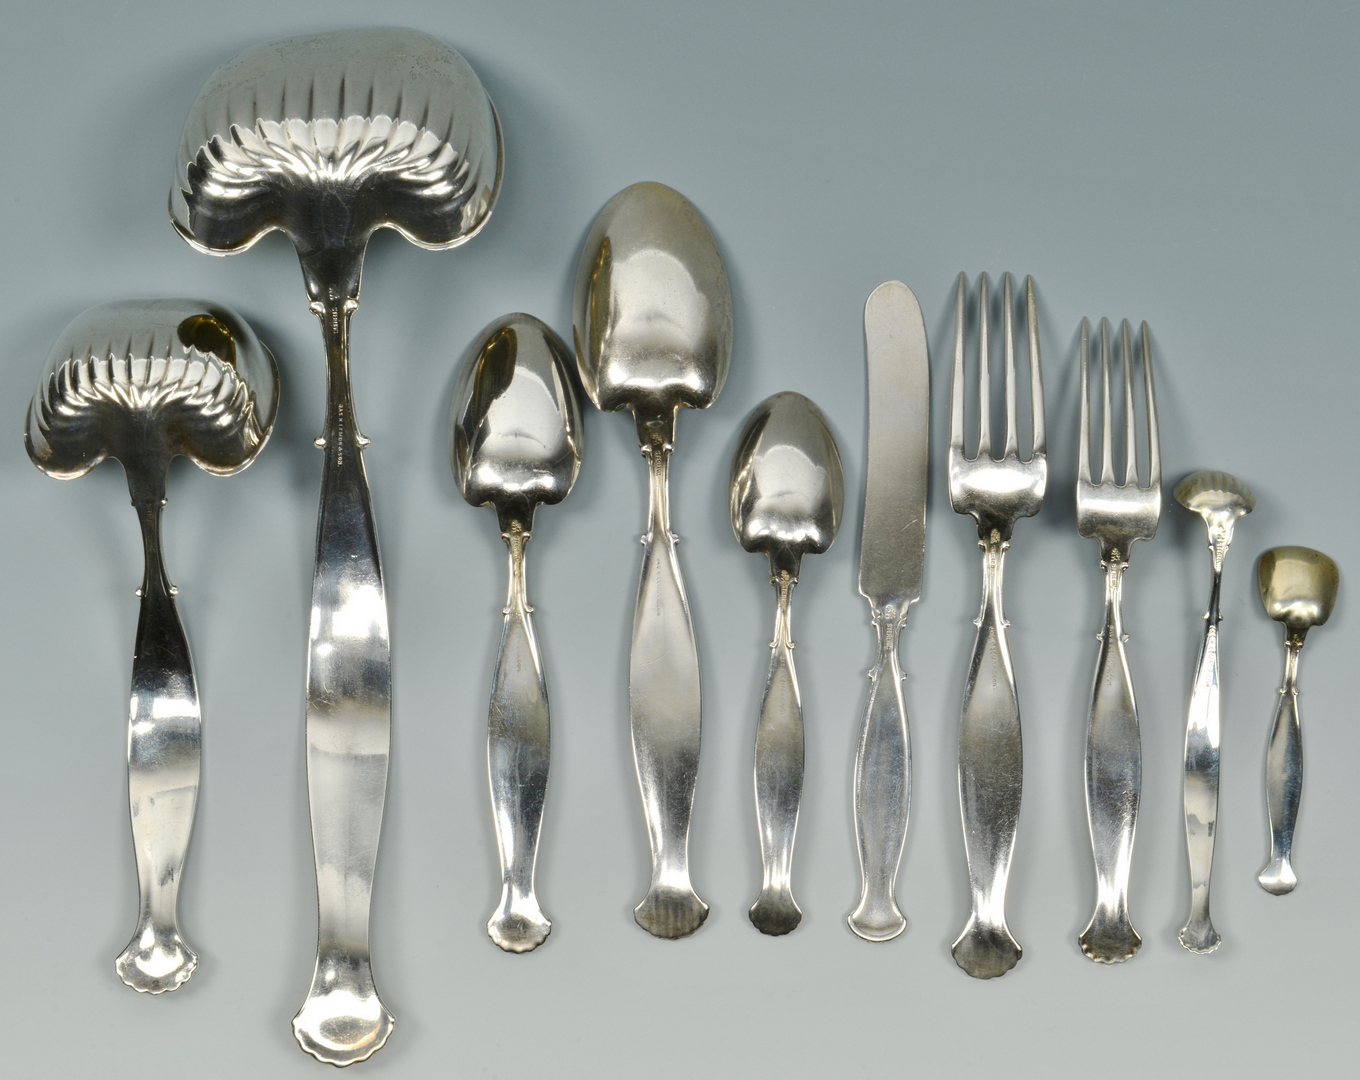 Lot 3088079: Whiting Flatware, Hyperion w/ lg Ladle and Case